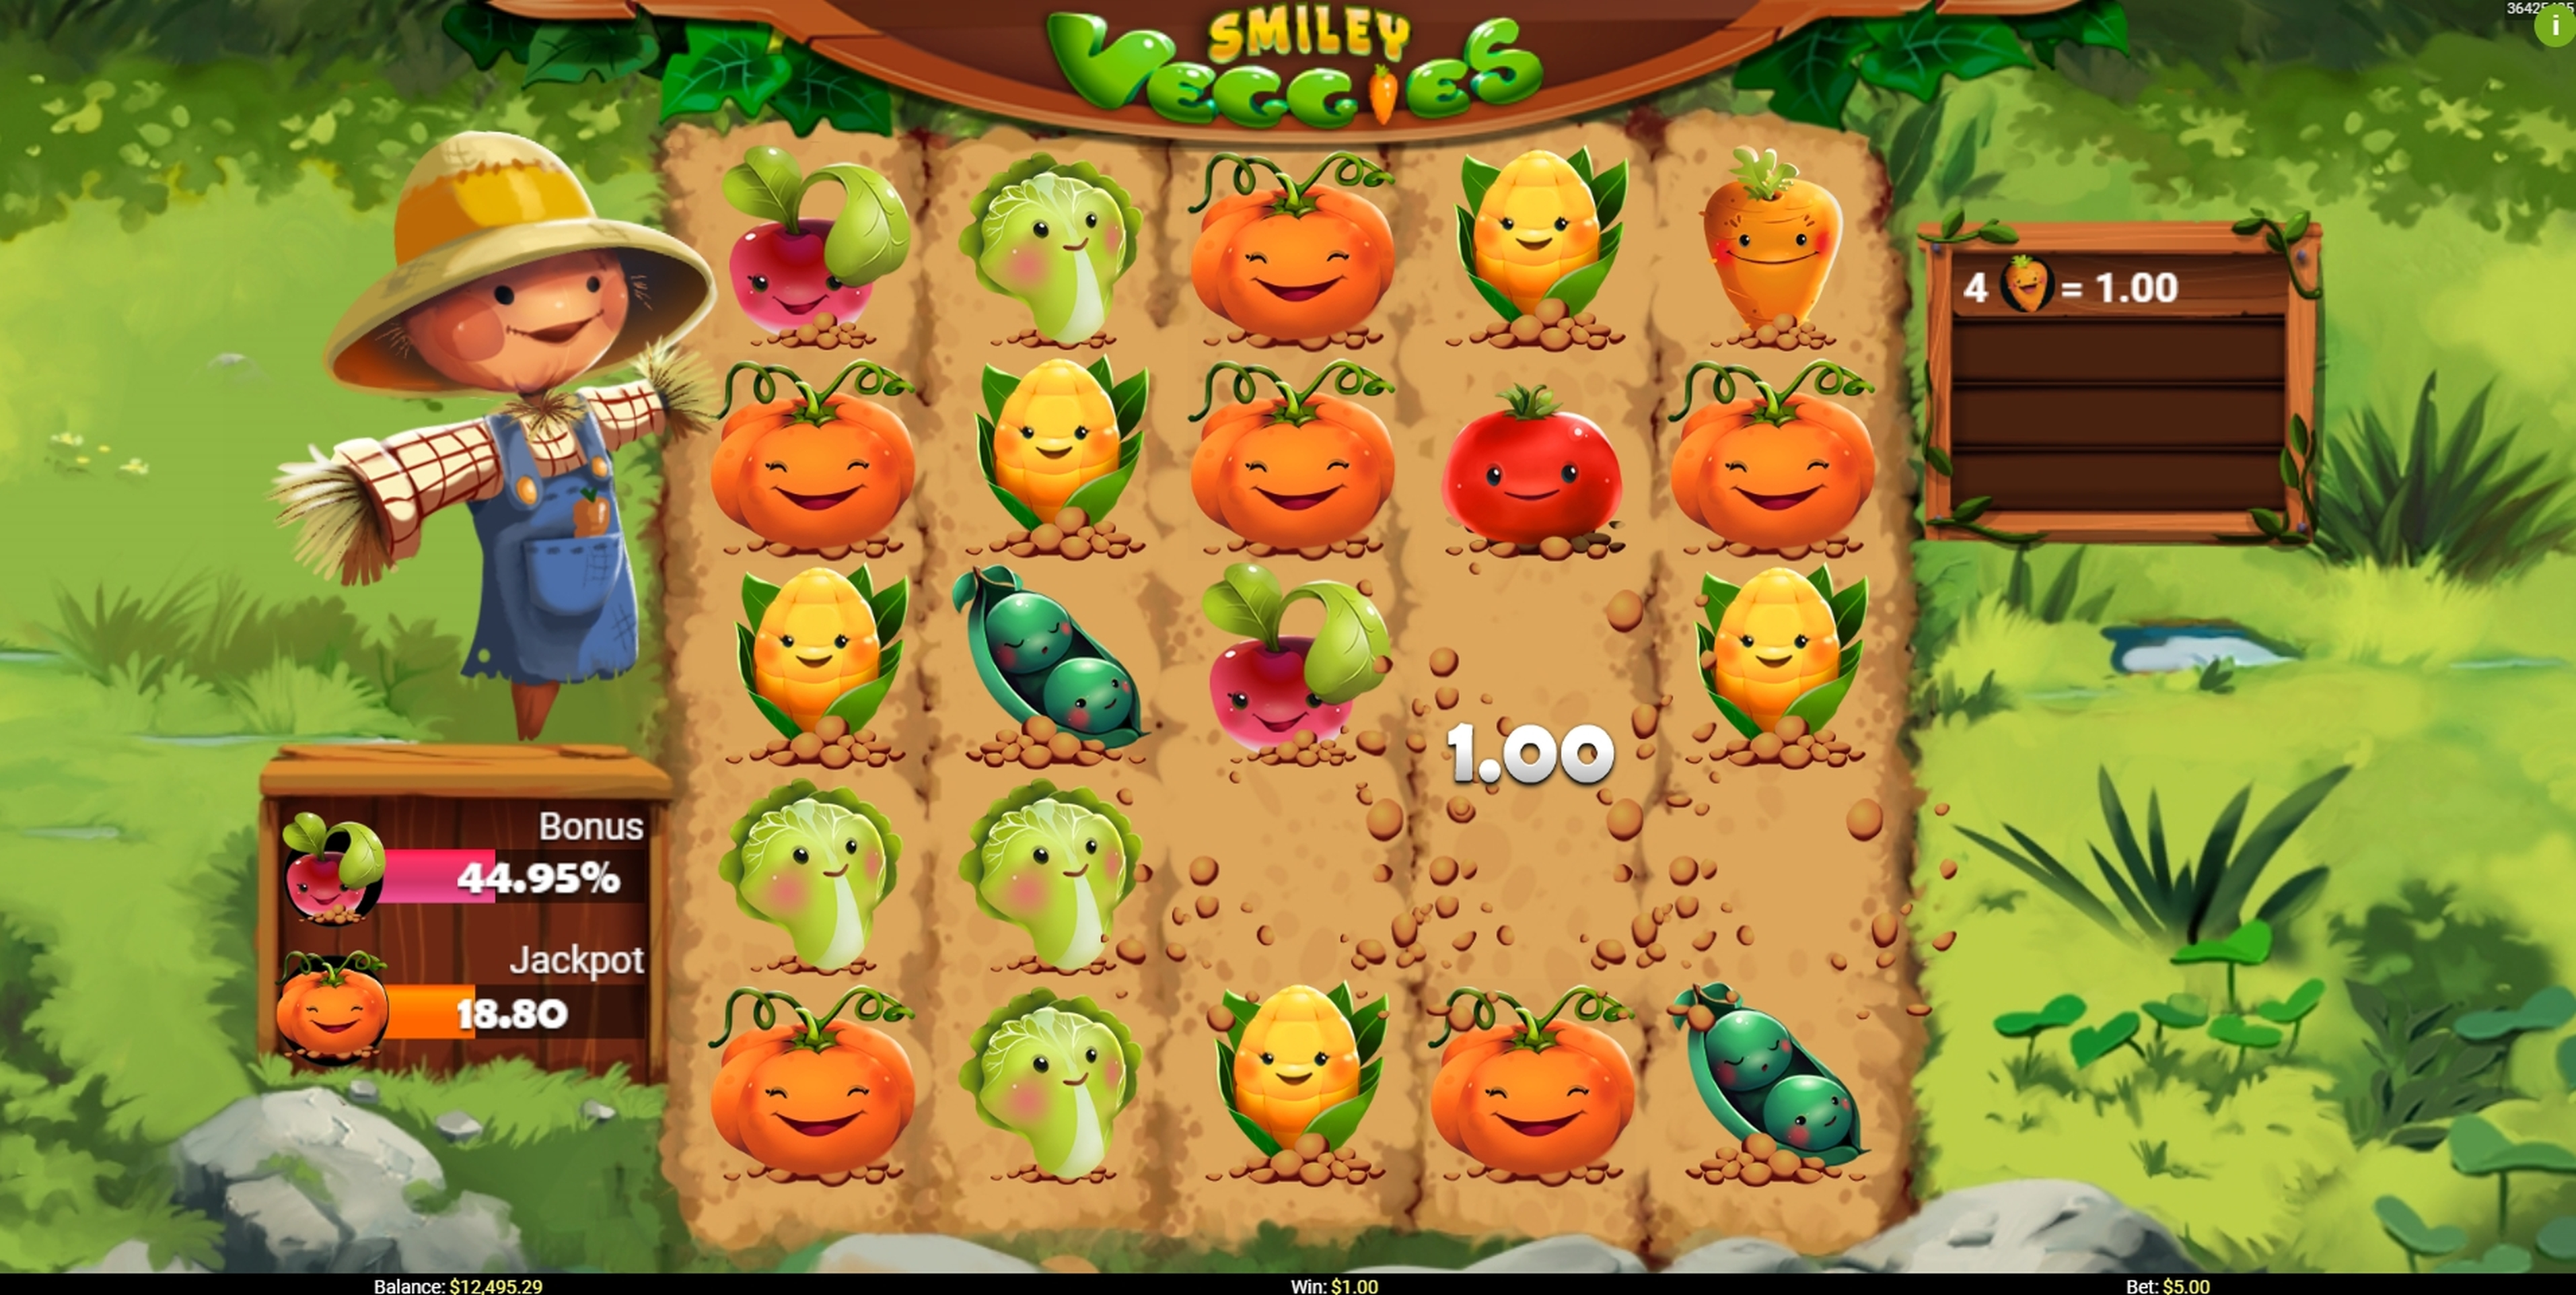 Win Money in Smiley Veggies Free Slot Game by Mobilots